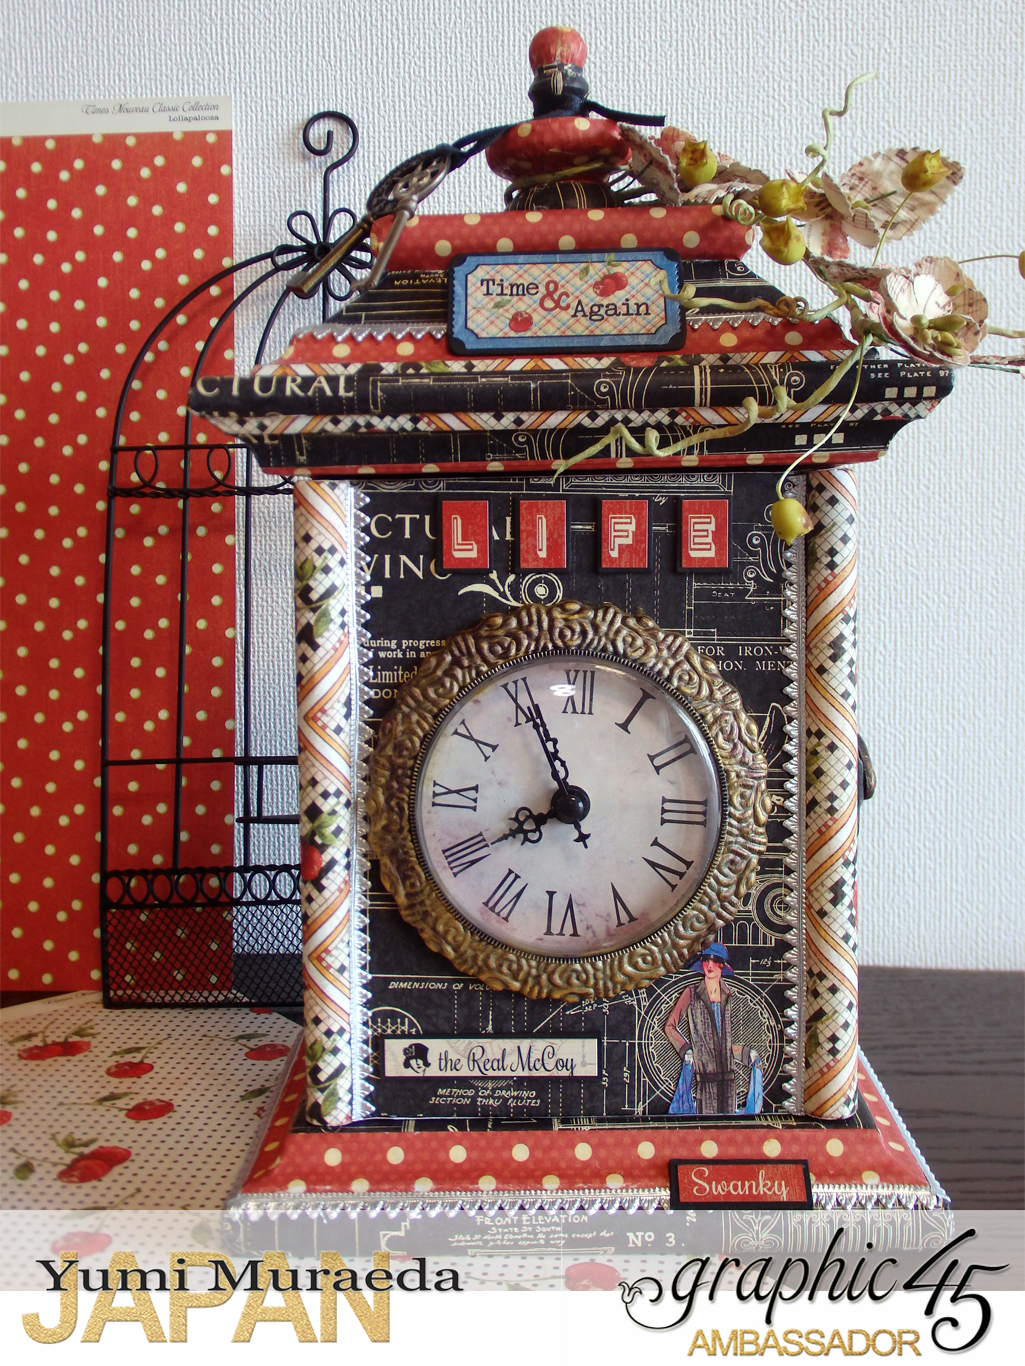 2Up Cycle Graphic45 DIY Craftpaper with Times Nouveau Secret Clock by Yumi Muraeada Product by Graphic 45 Photo